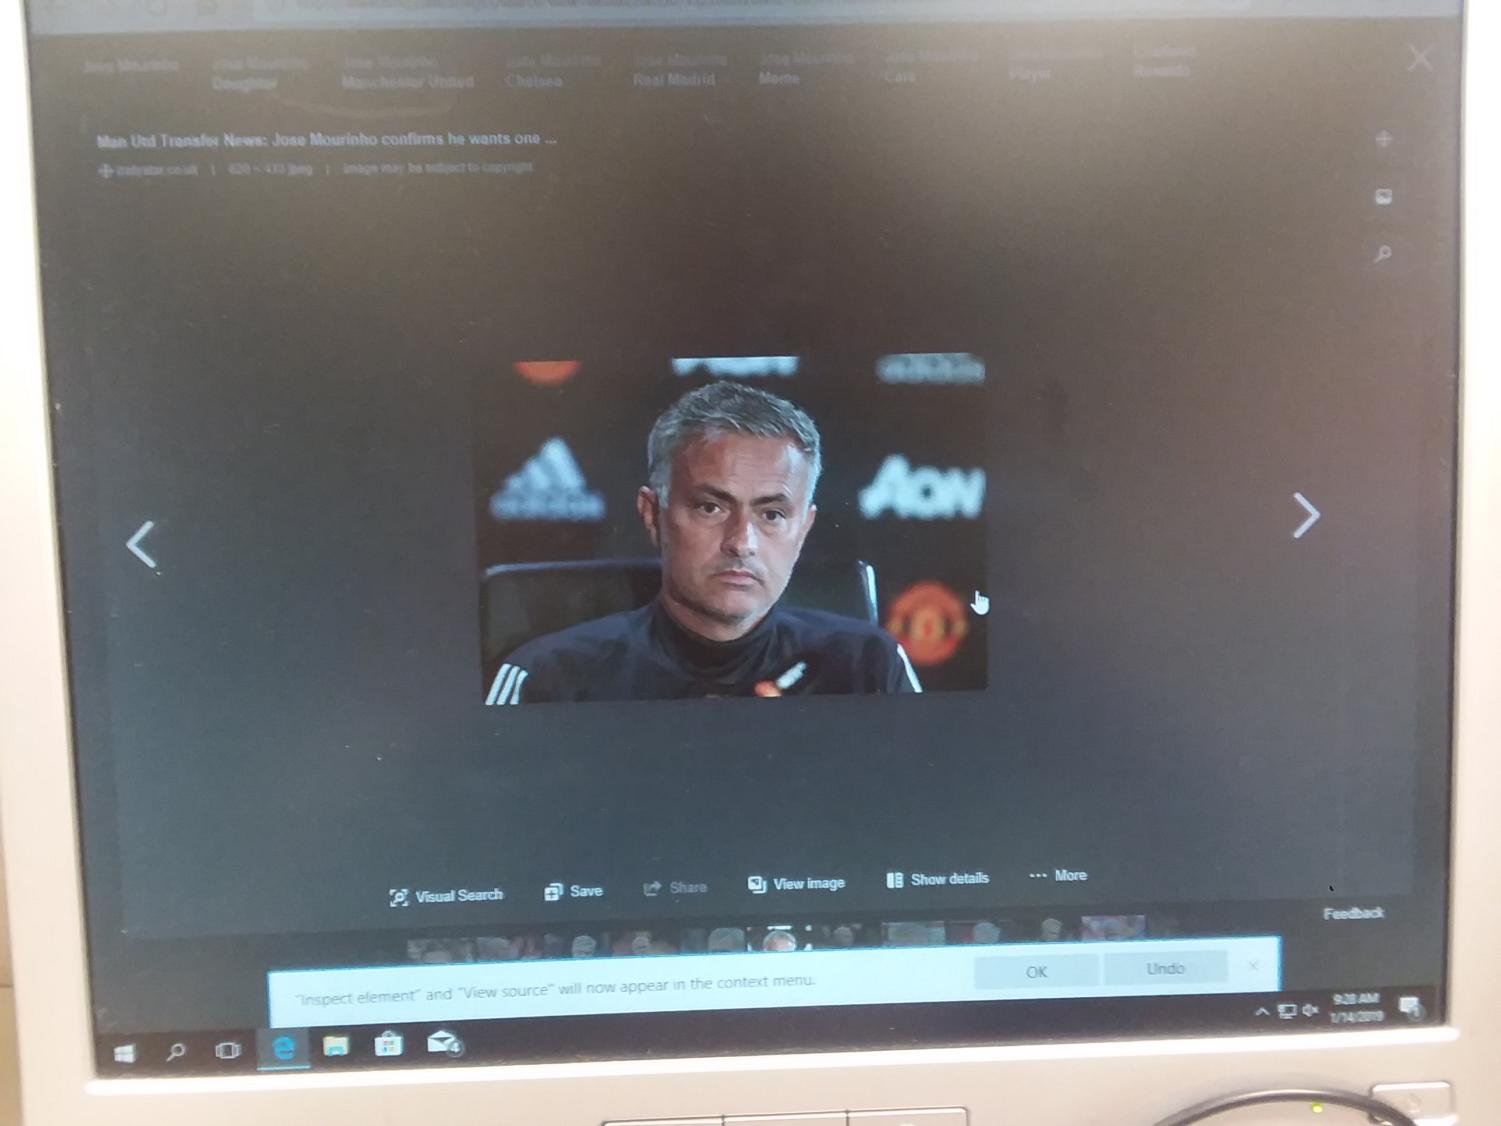 Former Coach Jose Mourhino who had a dismal campaign. And fired a week before Christmas and a godsend to United fans across the globe